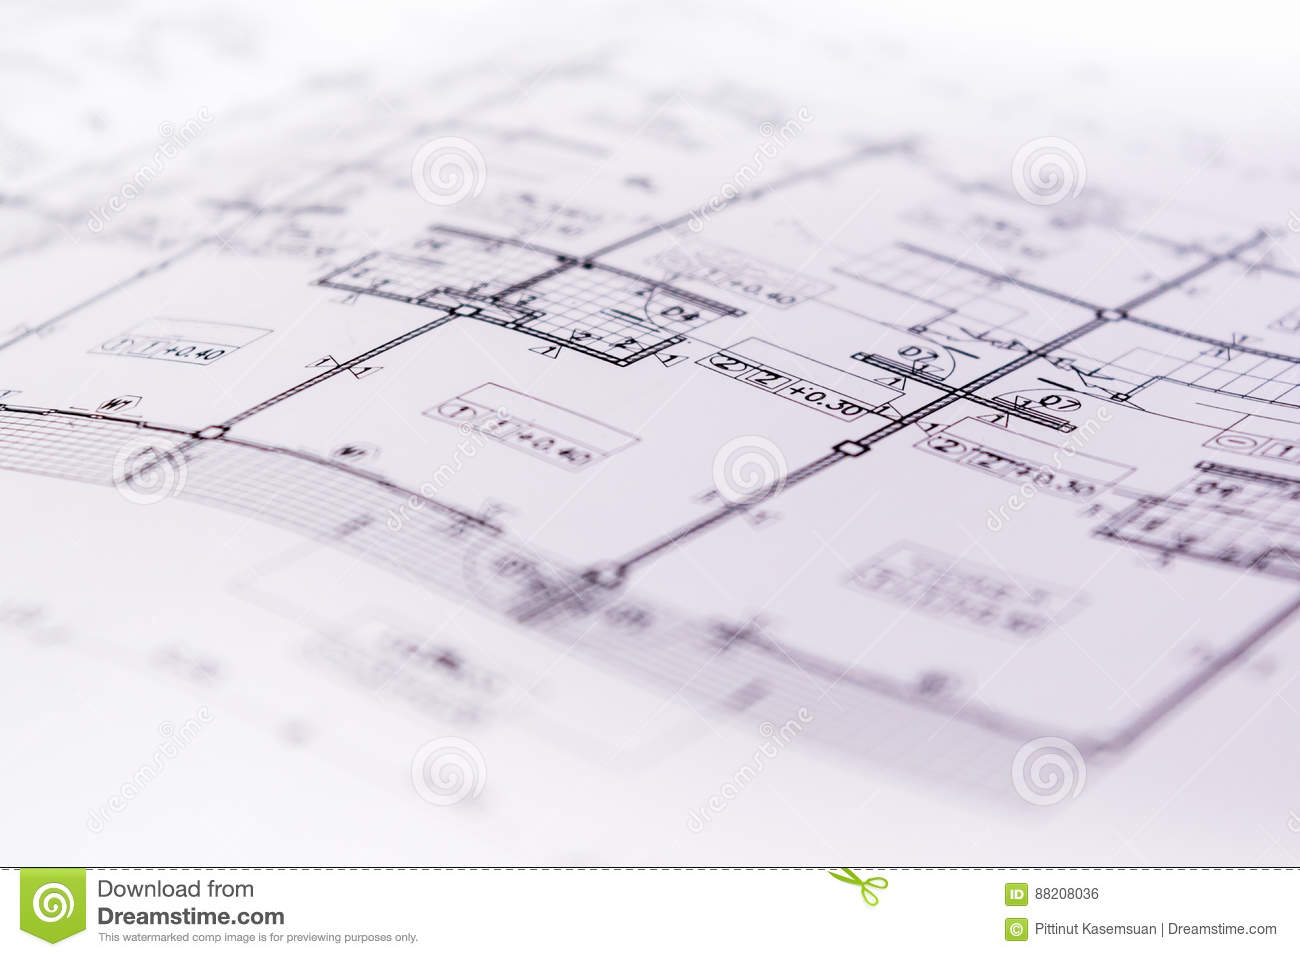 Engineering diagram blueprint paper drafting project stock photo engineering diagram blueprint paper drafting project royalty free stock photo malvernweather Image collections